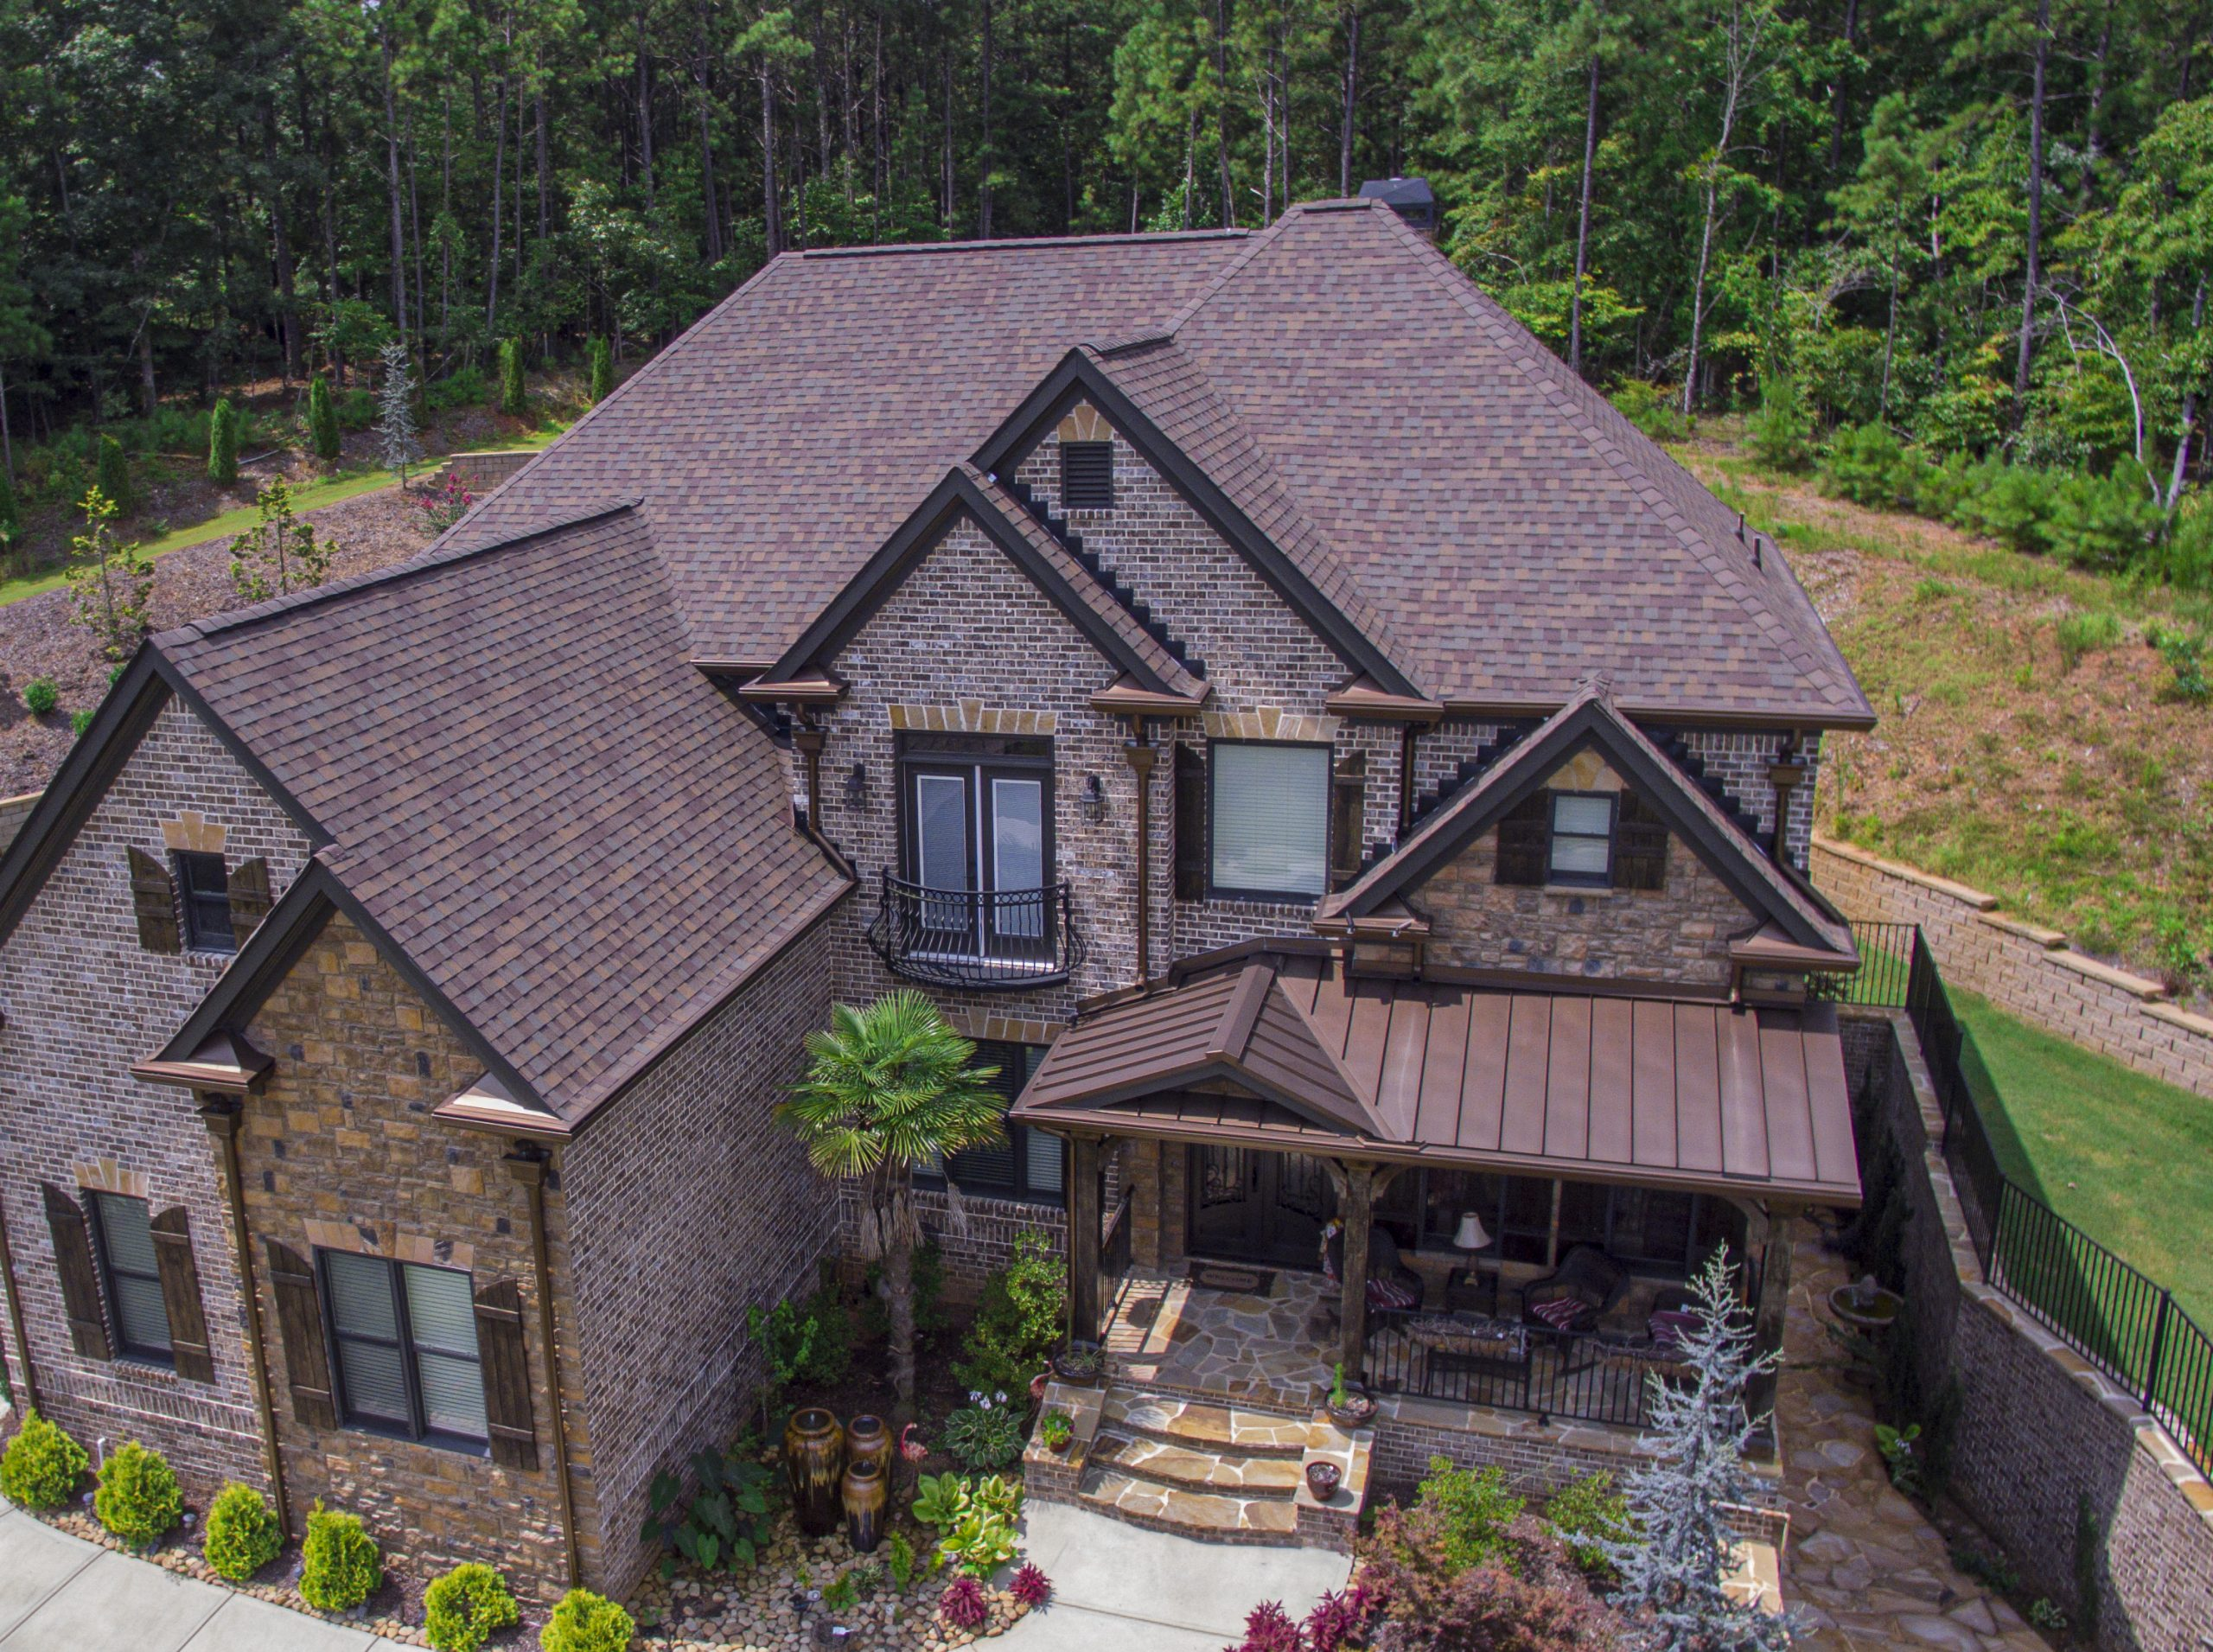 Empire Roofing and Restoration - Loganville, GA Roofing Contractor